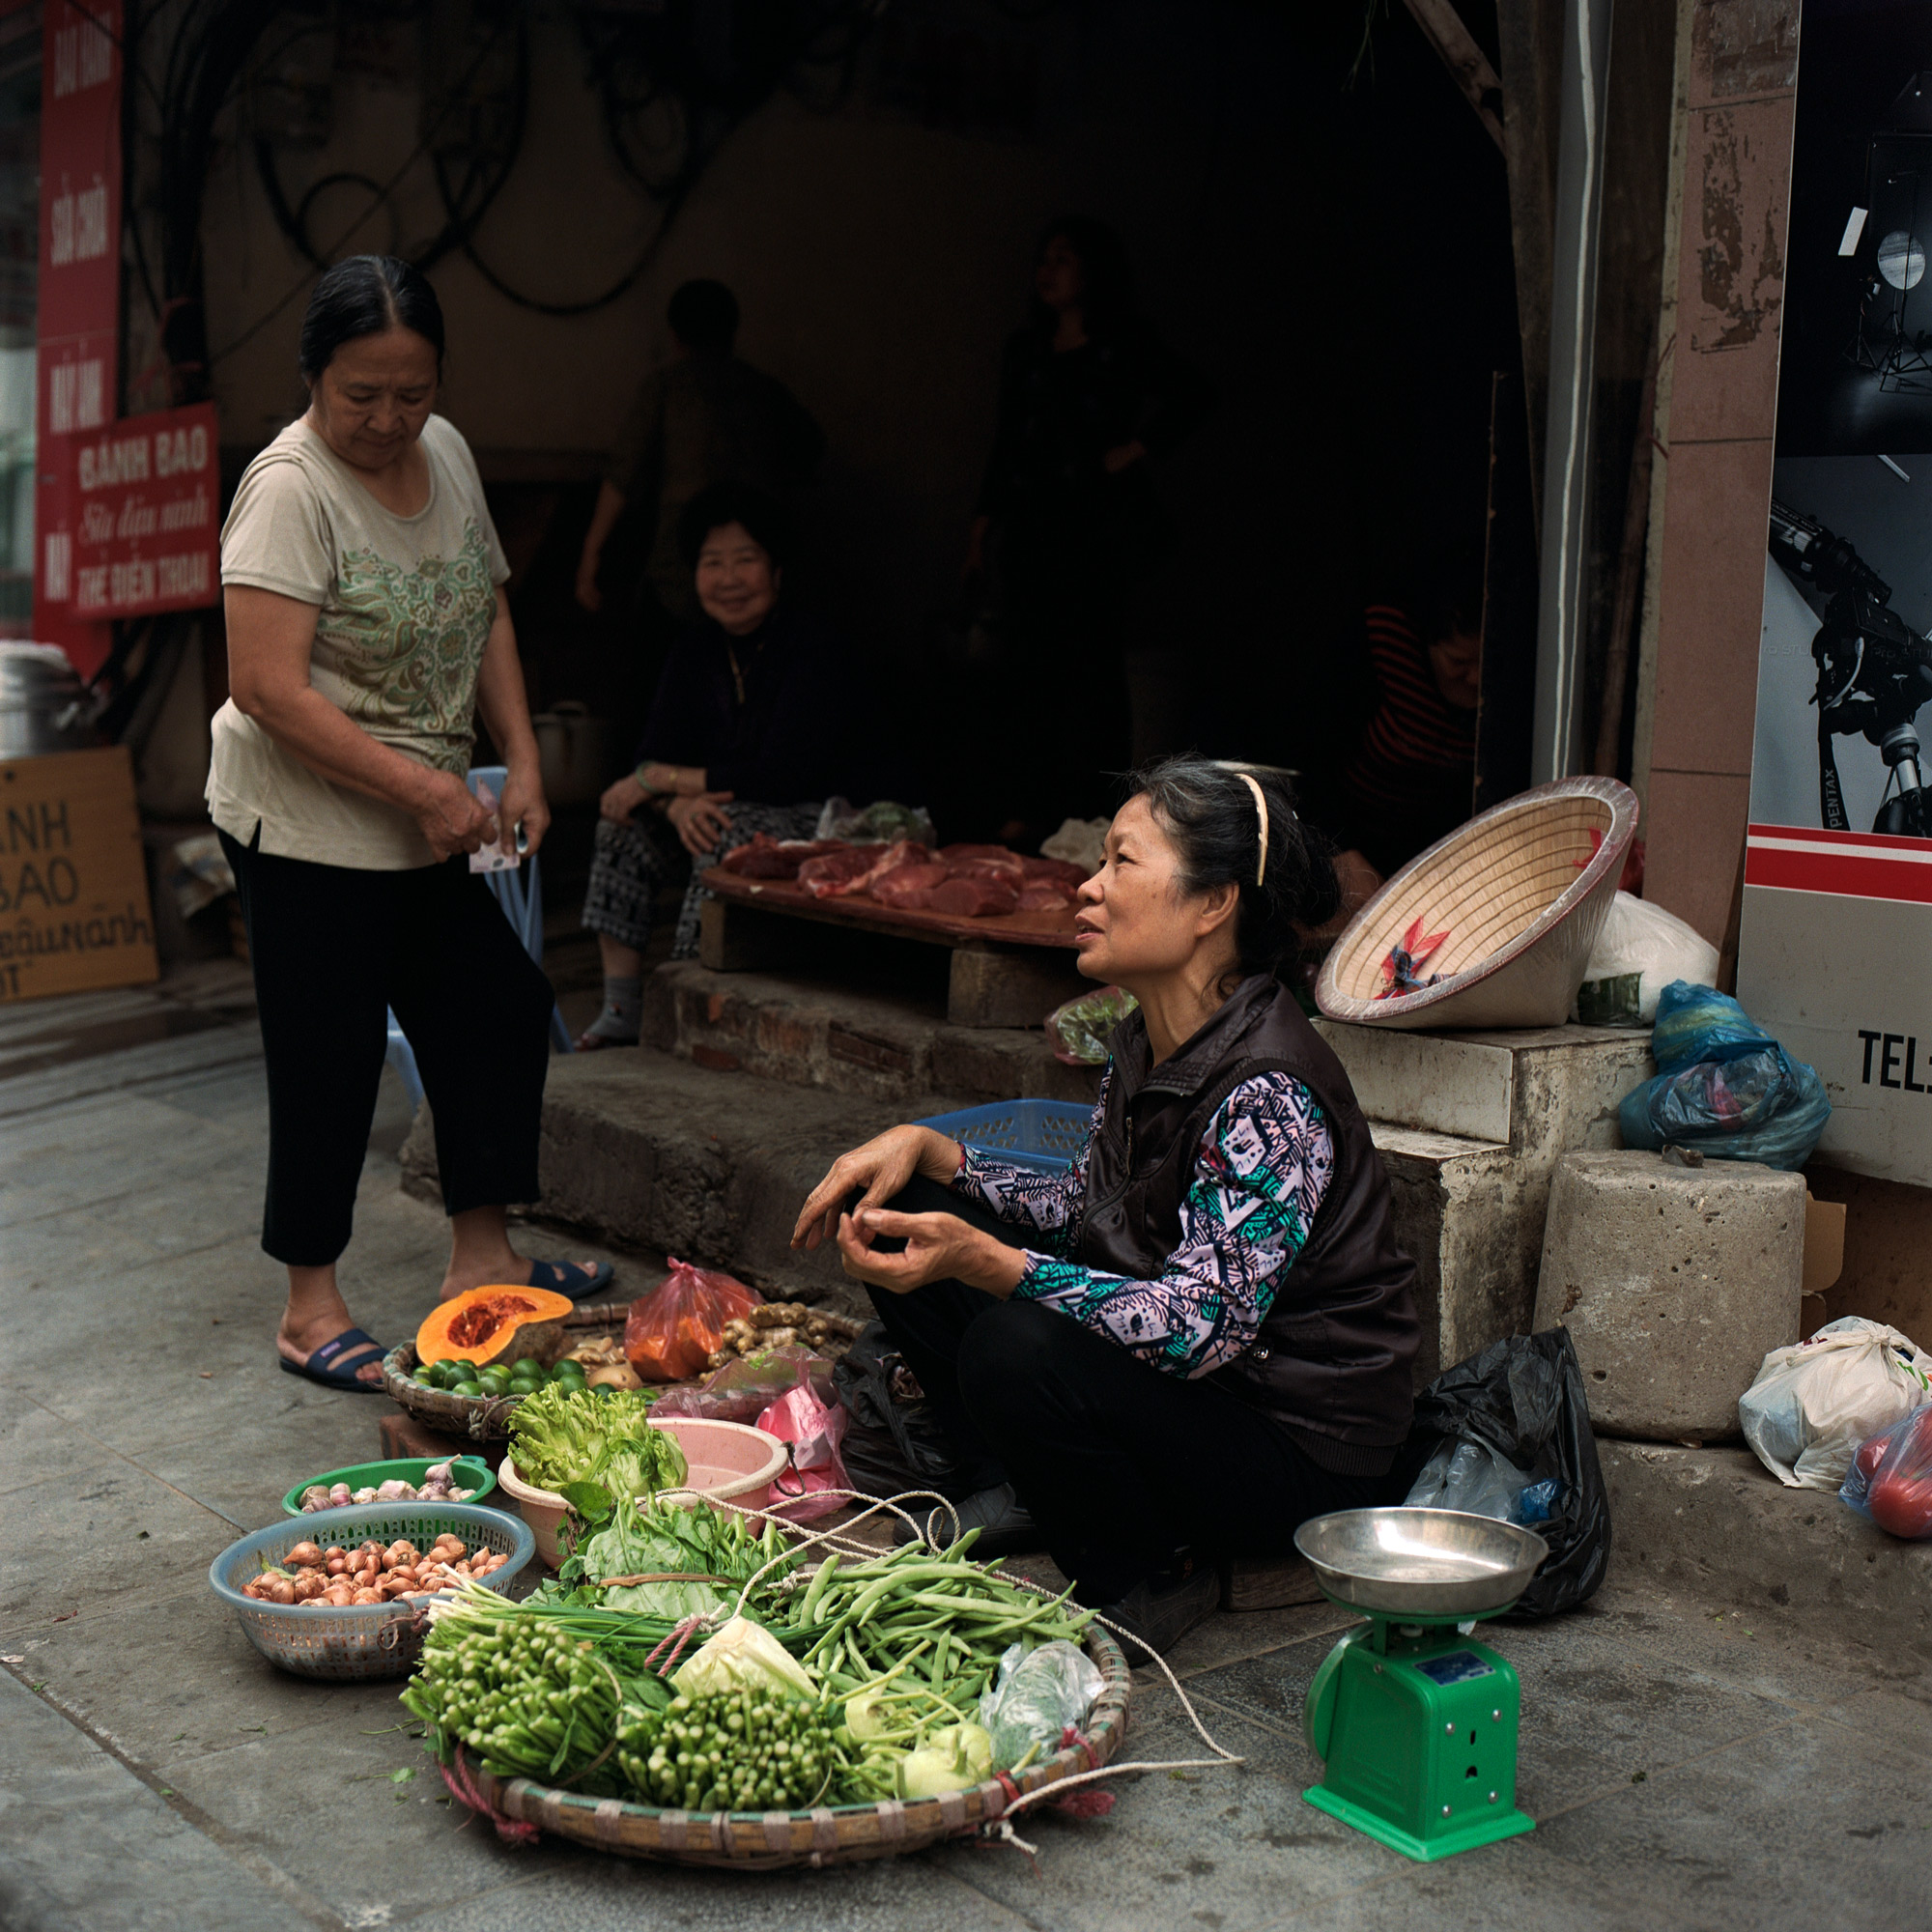 Woman vendor with baskets of fresh fruit and veg, at the side of the road in Hanoi Vietnam. Eastern Travels, Photography By Ioannis Koussertari